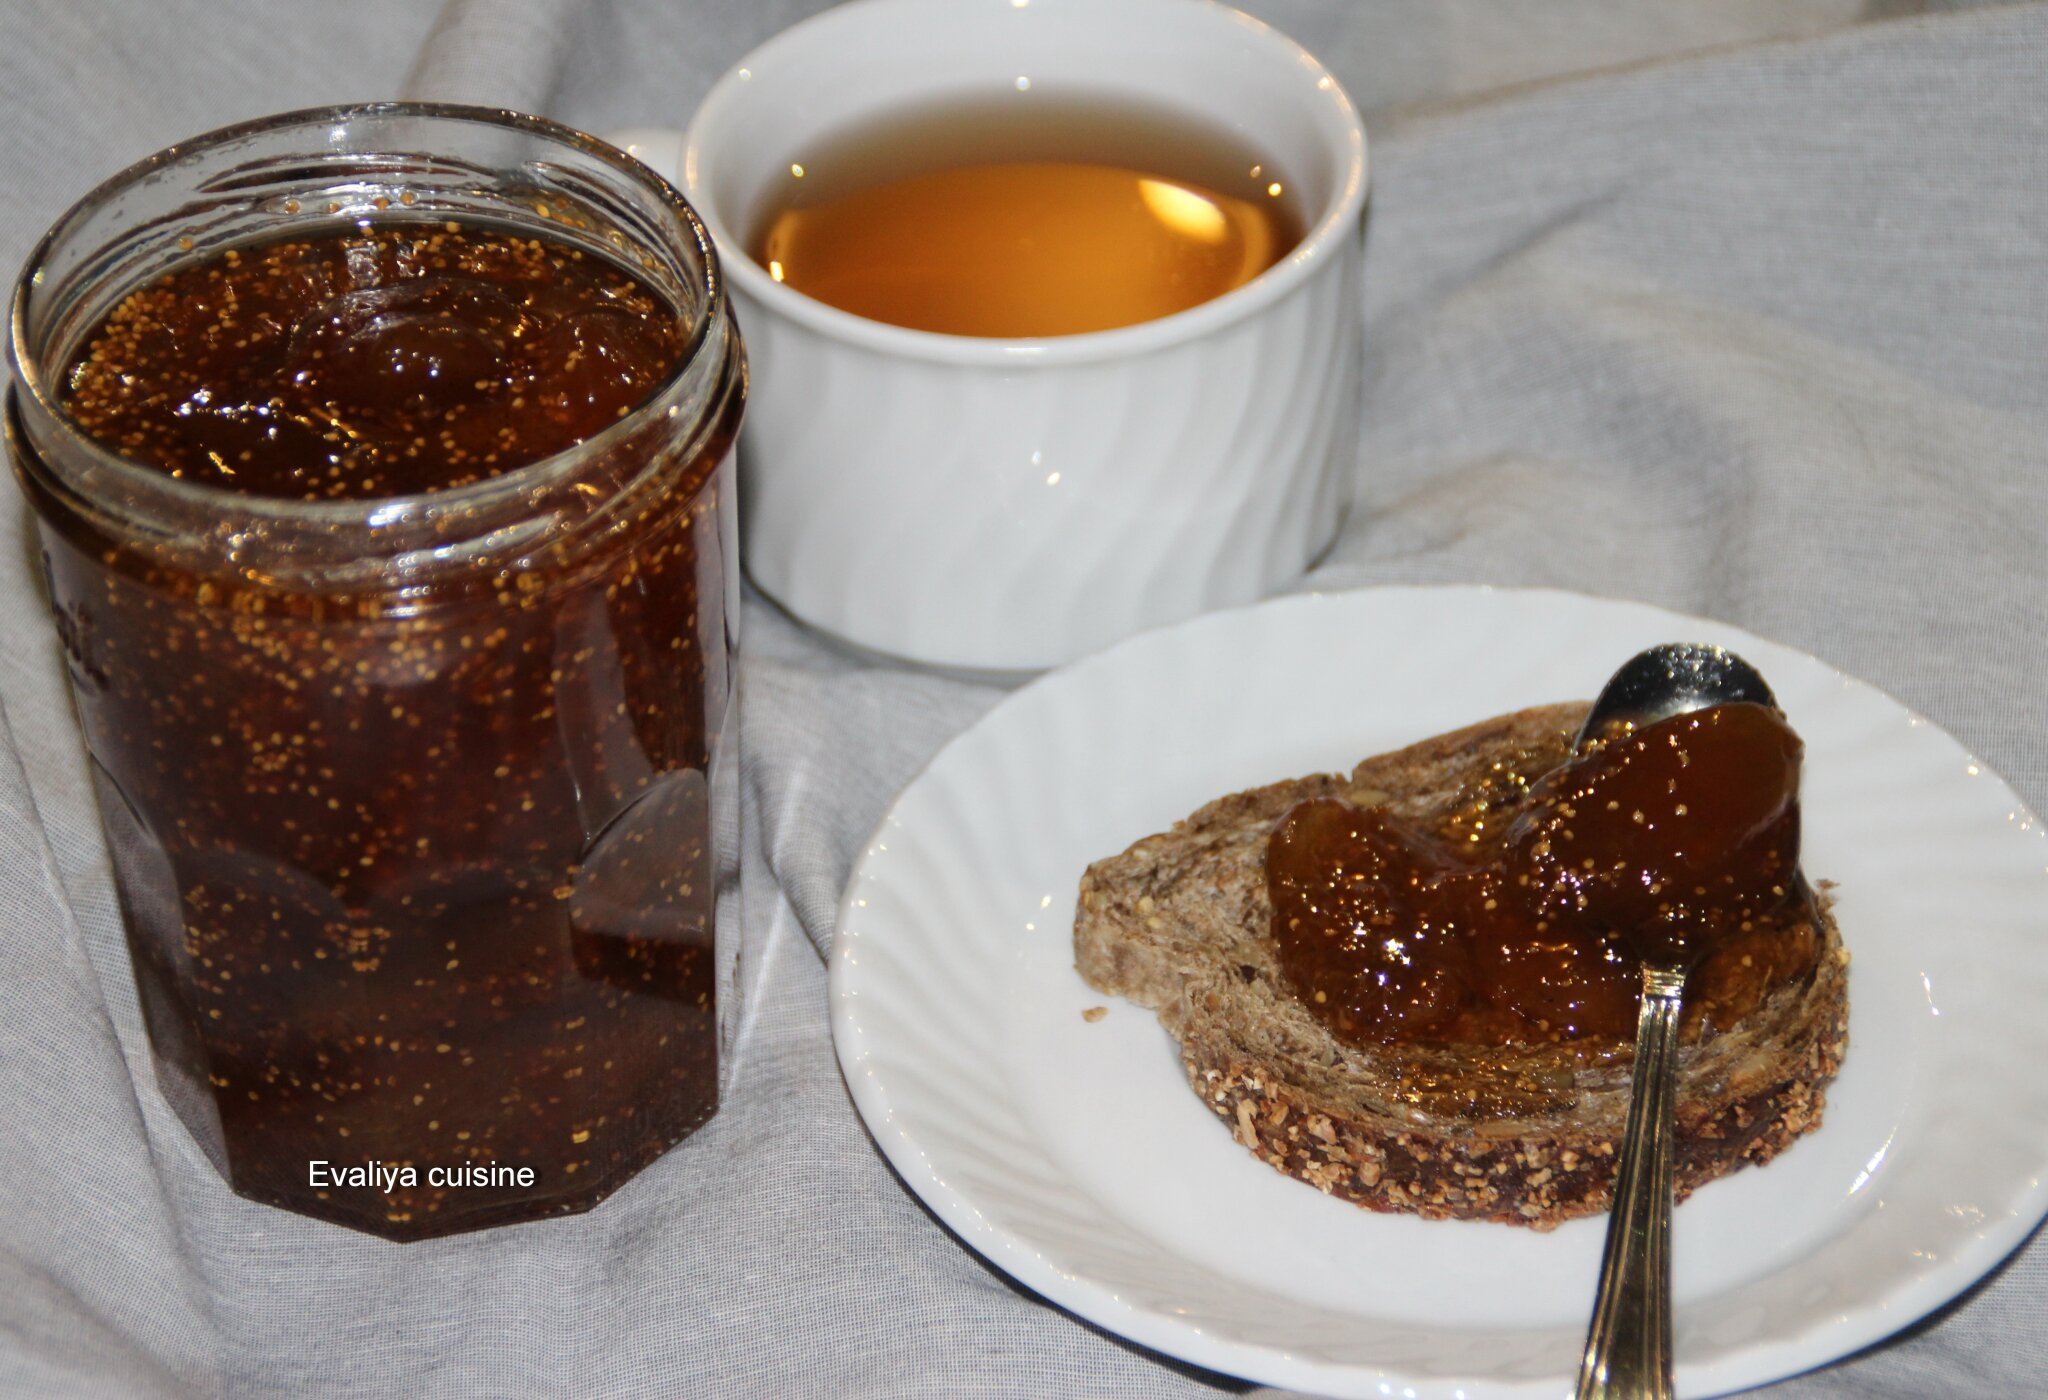 Evaliya cuisine - Confiture de figues blanches ...